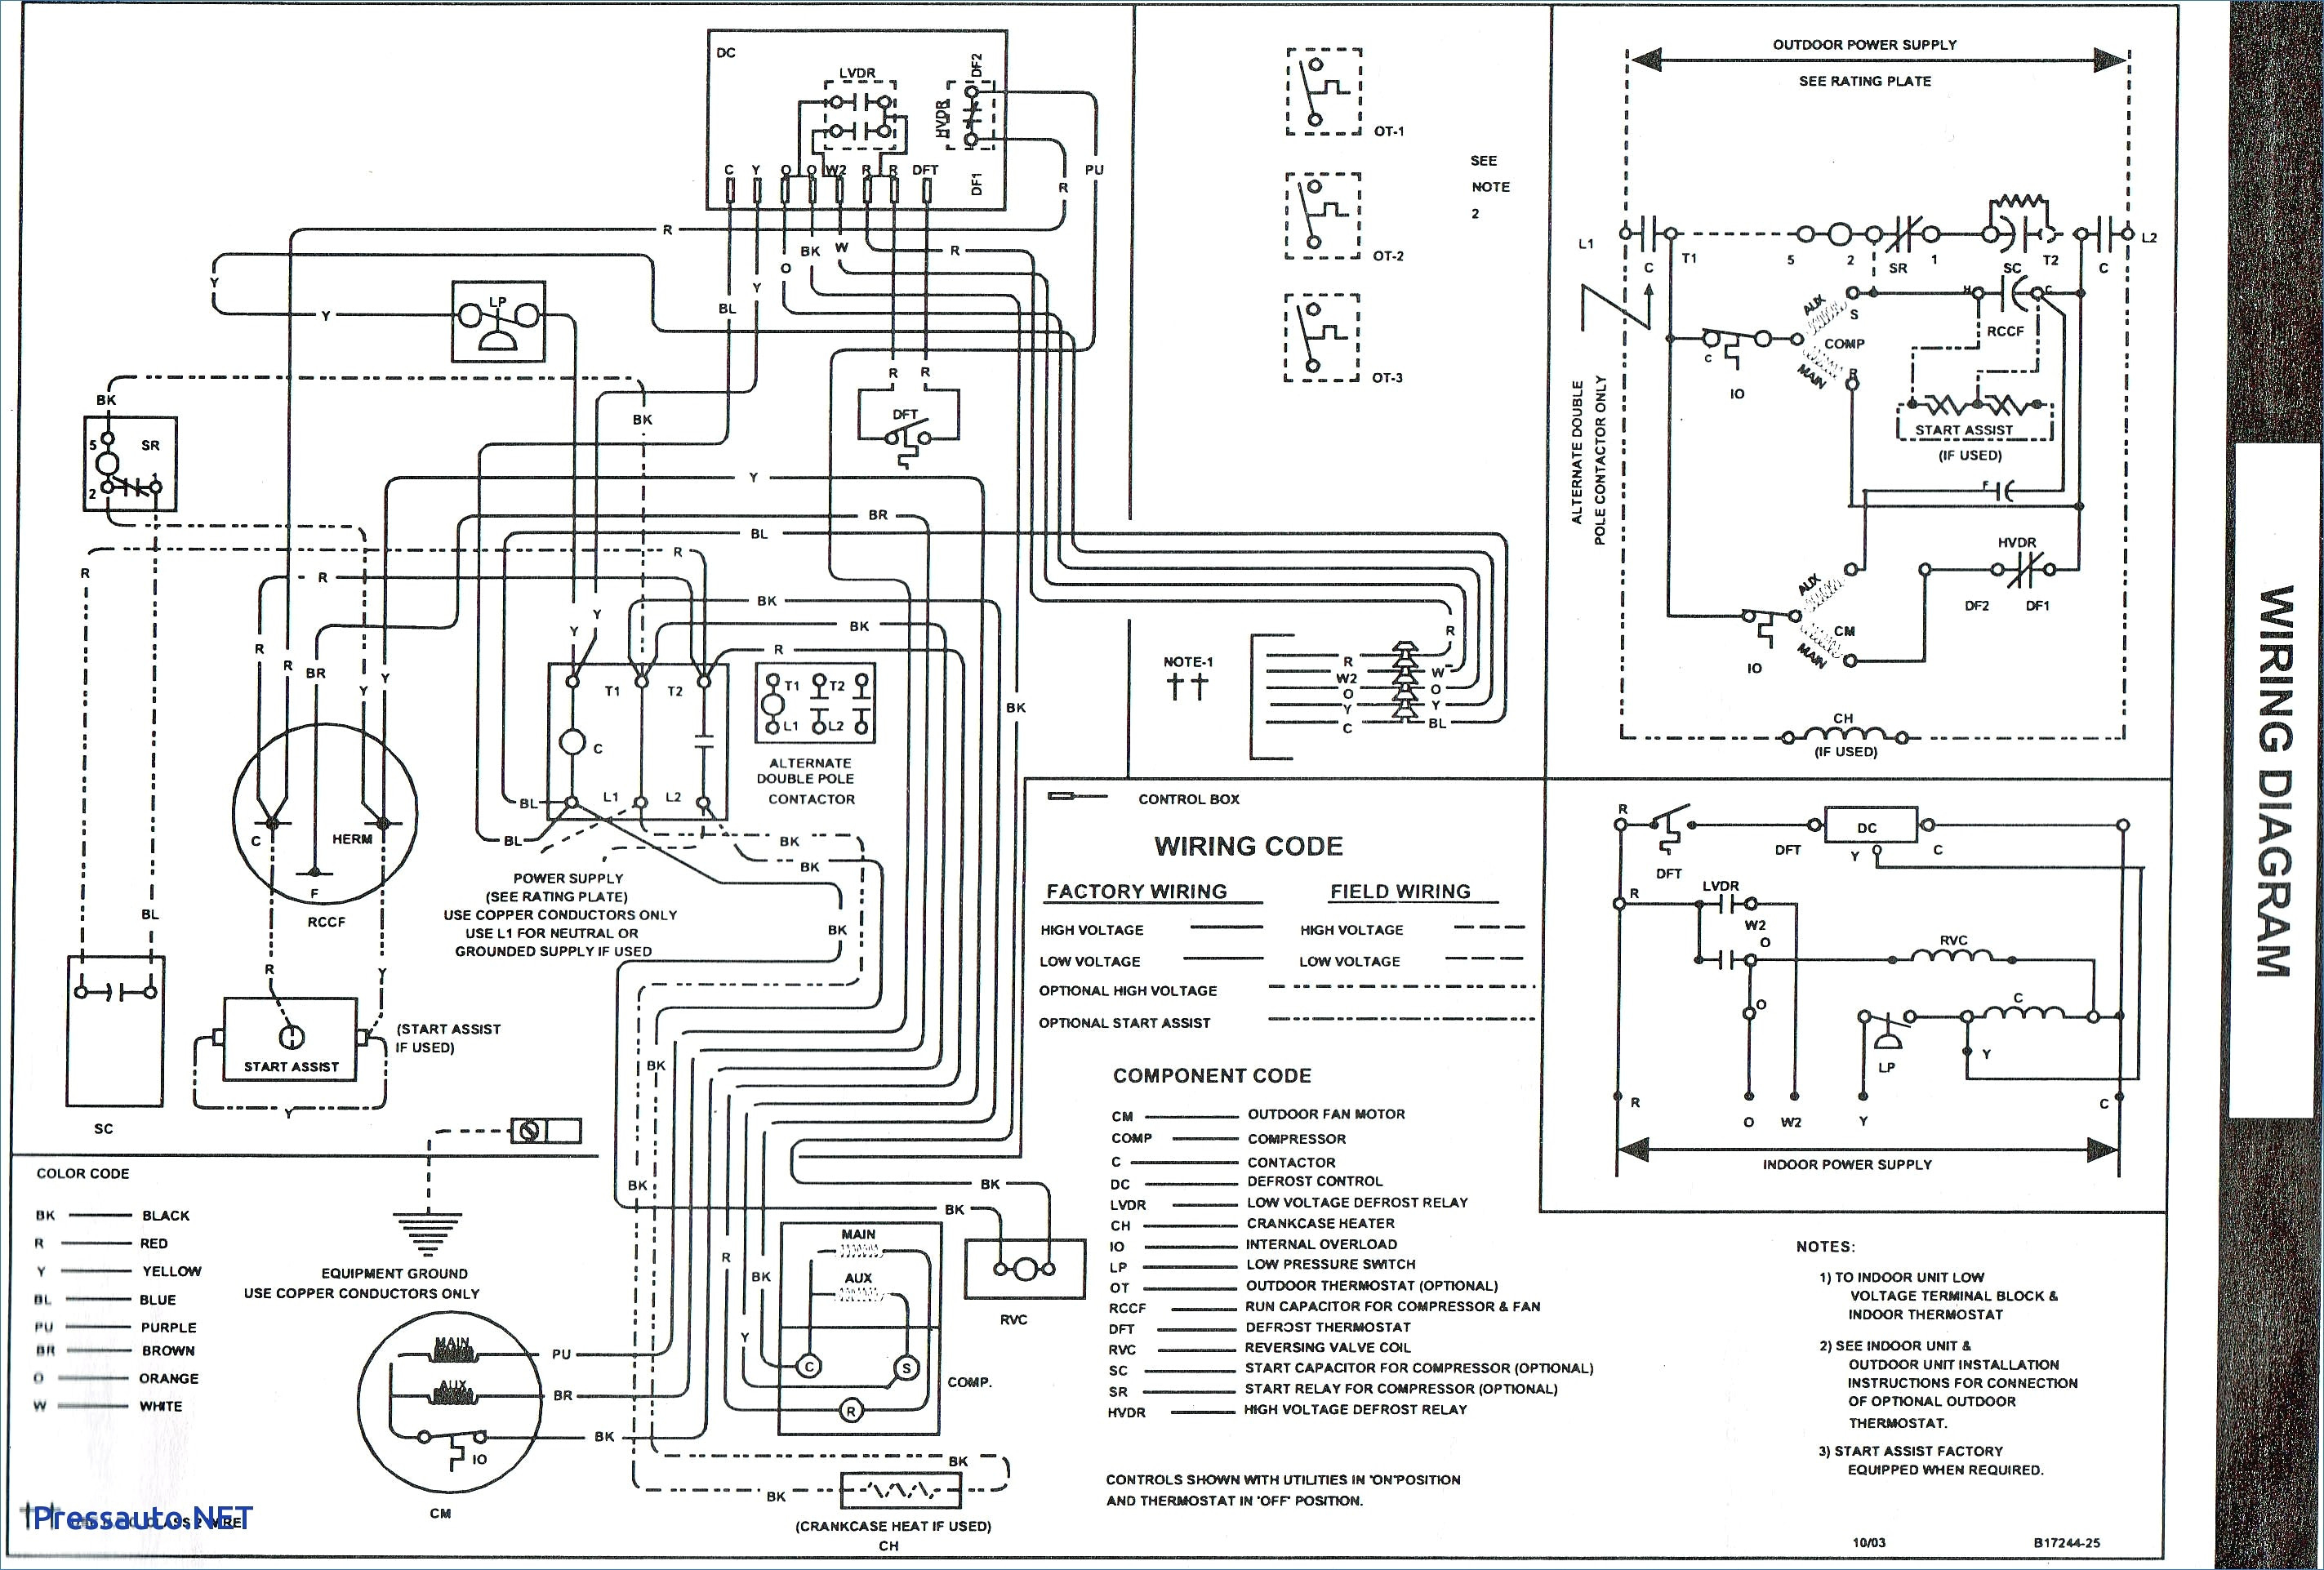 Goodman Hkr 10 Wiring Diagram Collection Sample T Bucket Schematic Download Furnace B2network Co 2